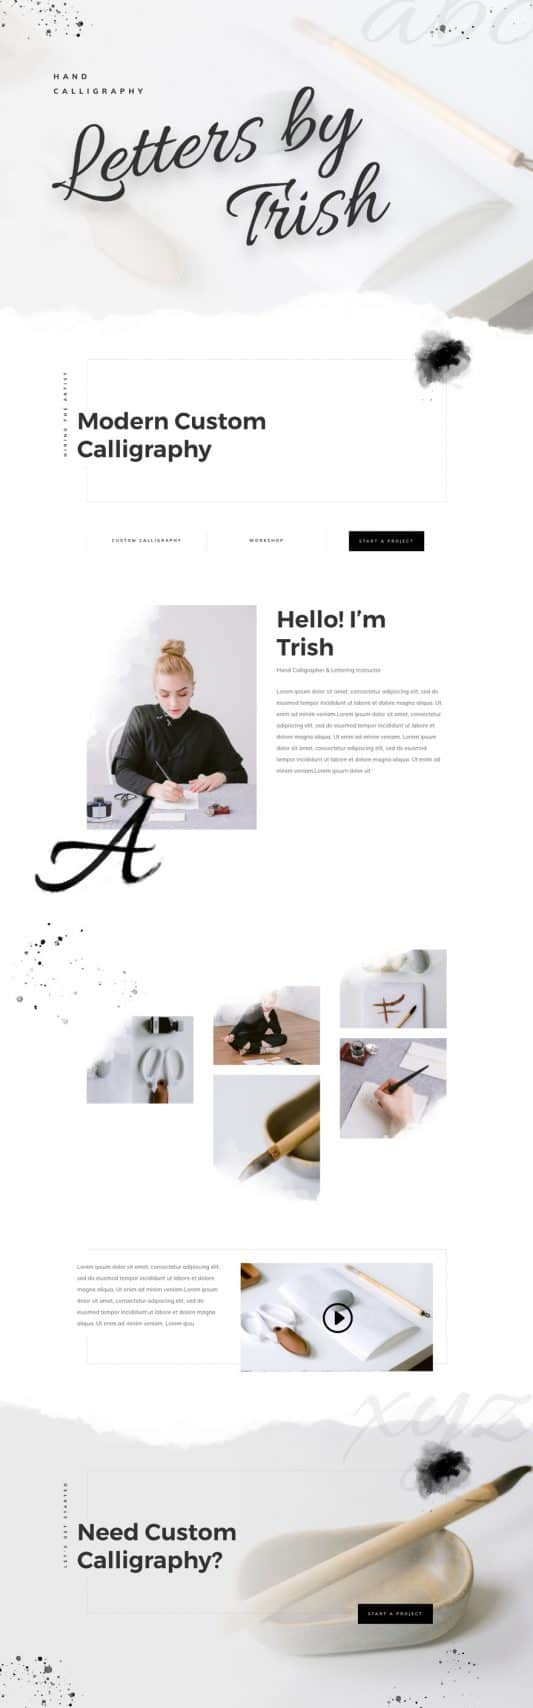 Calligrapher Web Design 3